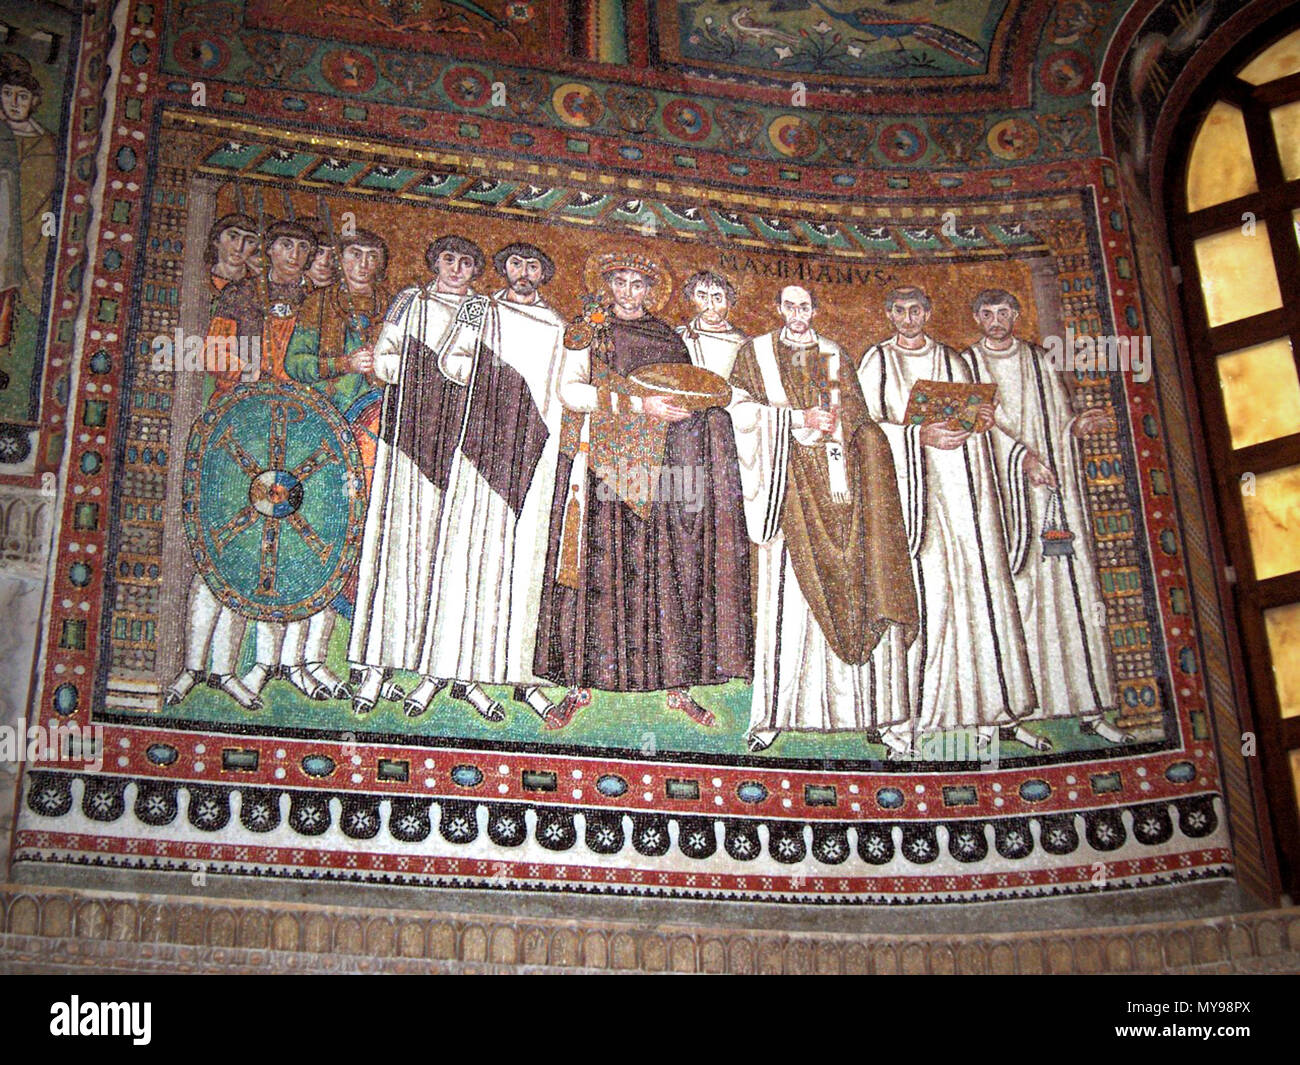 Mosaic Attendants Italy Justinian And His Emperor Ravenna Vitale C San 547 Church